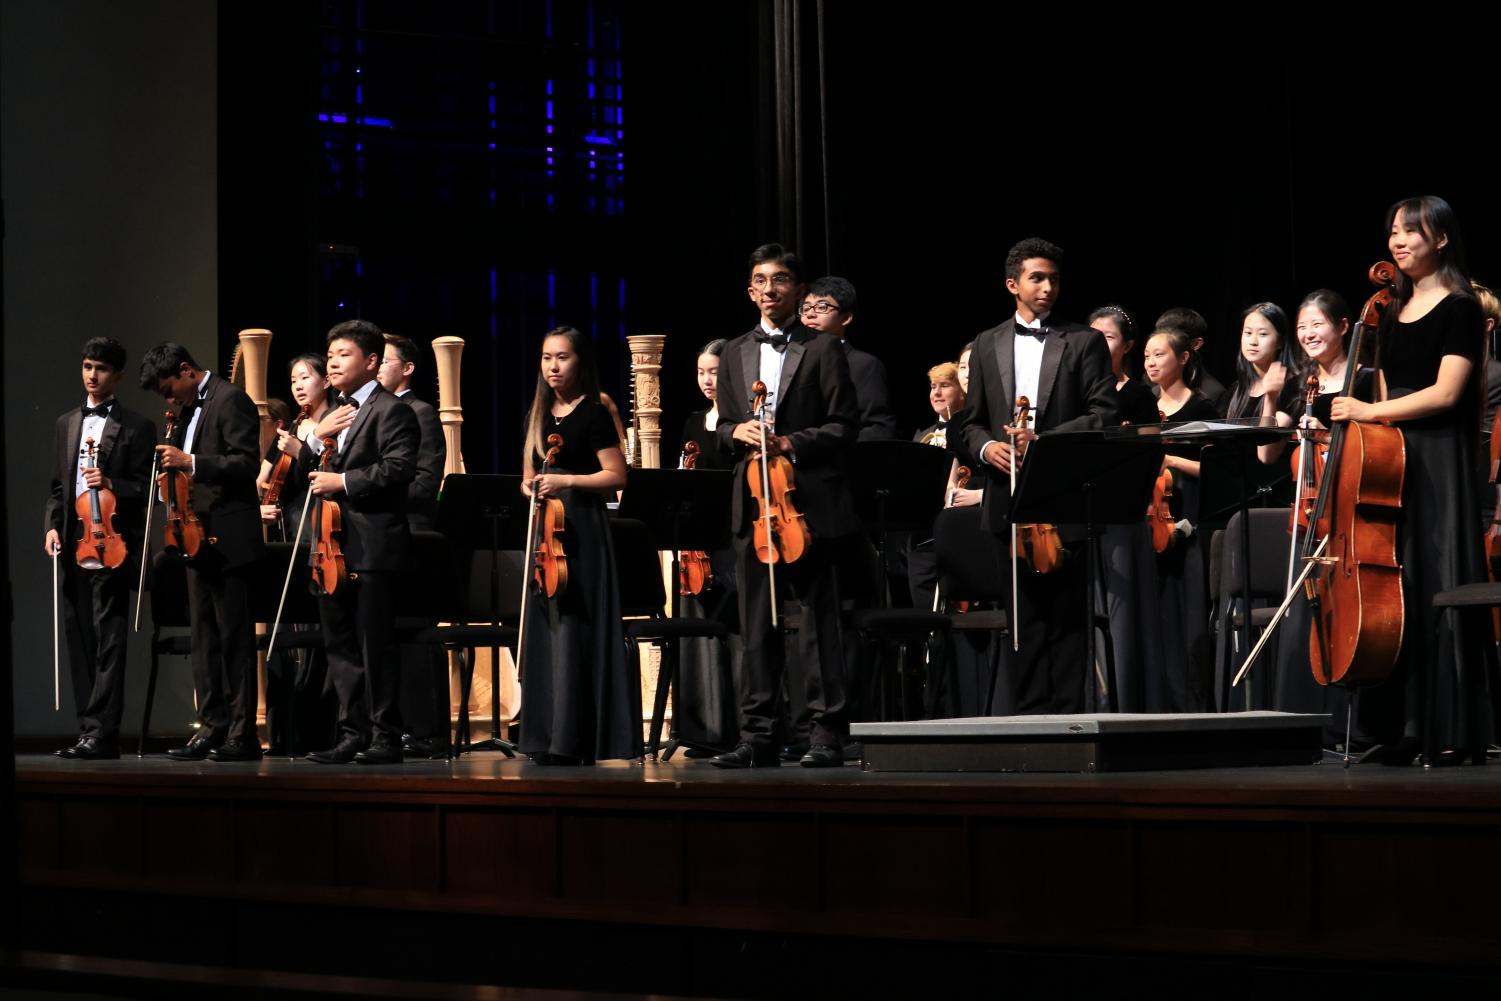 The+symphony+orchestra+rises+for+the+audience+after+the+concert.+